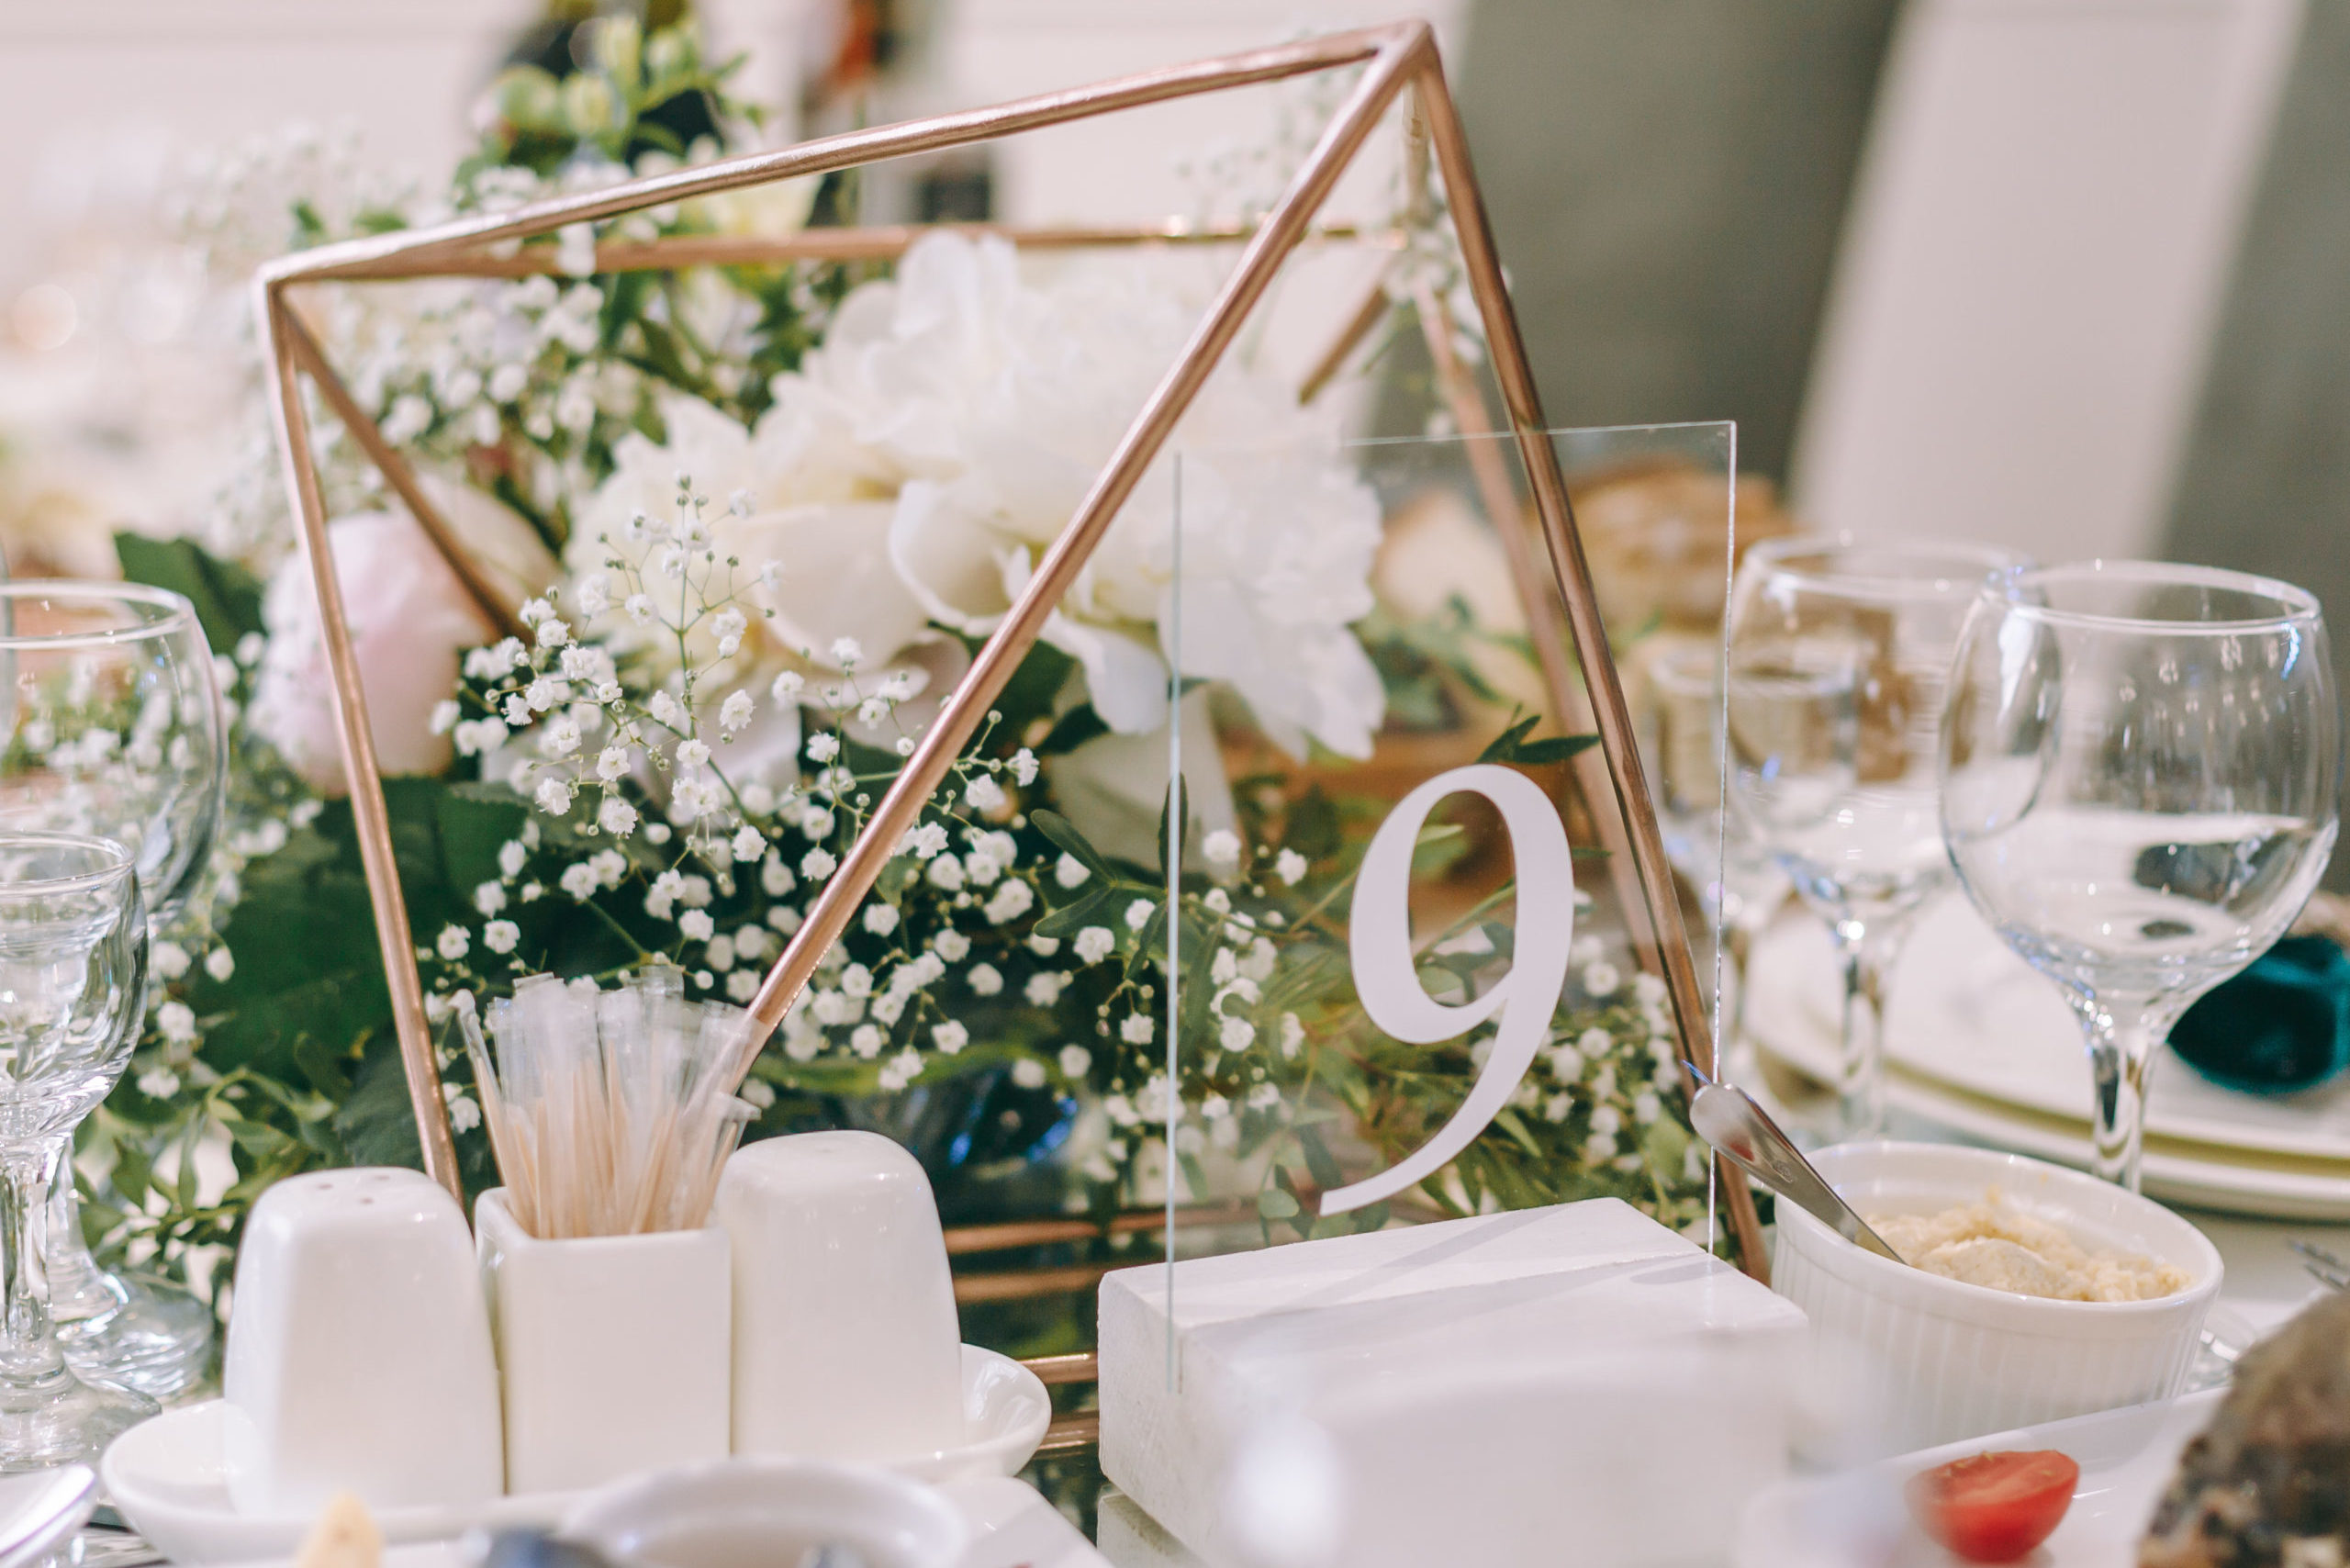 prestataires-table-salle-mariage-04-domaine-cassan